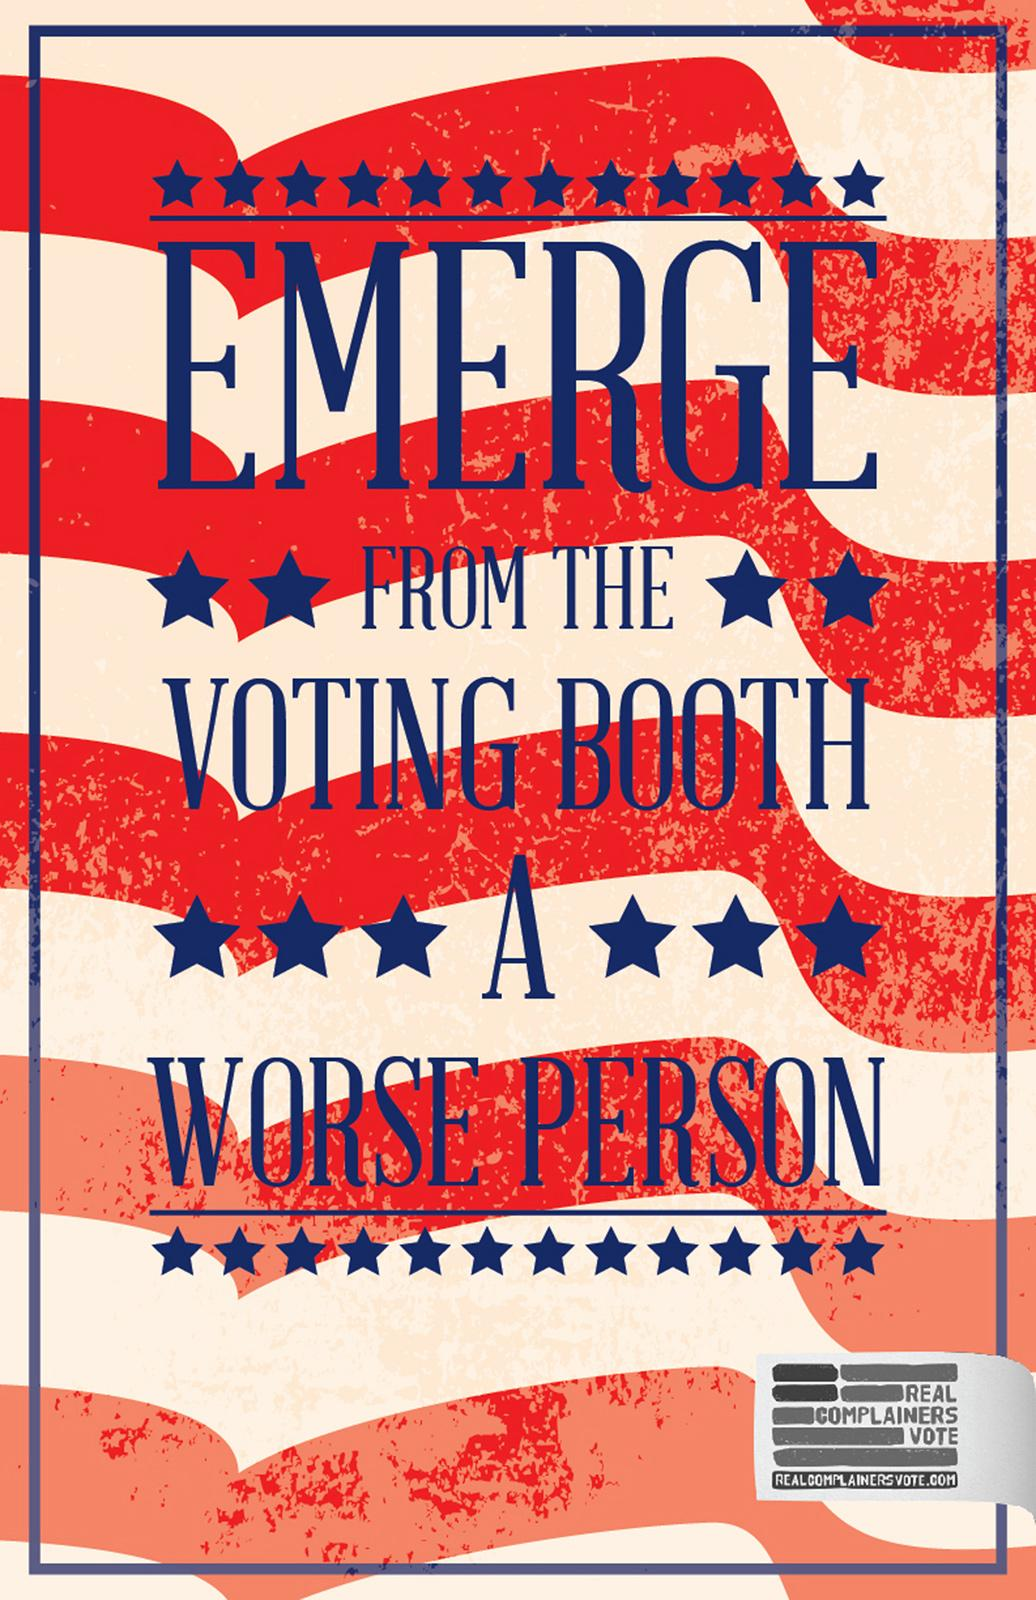 Real Complainers Vote Outdoor Ad -  Emerge from the voting booth a worse person